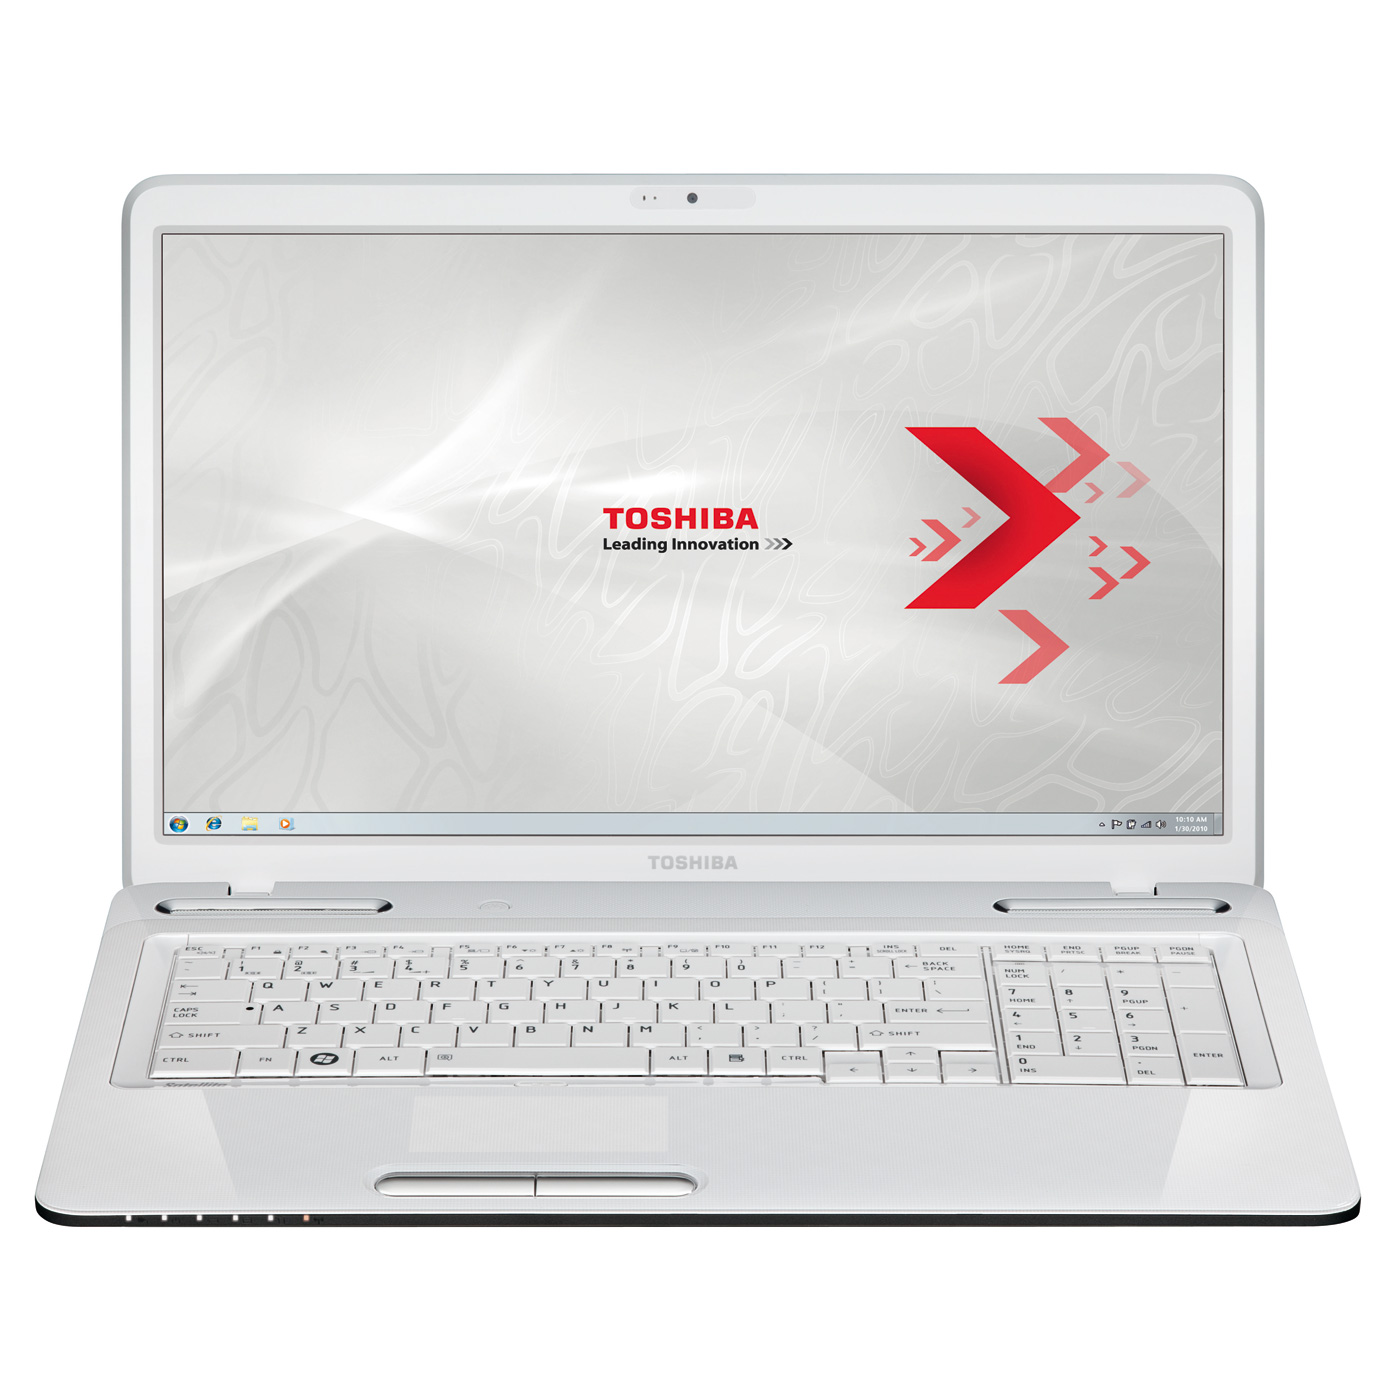 toshiba satellite l775 17n blanc pc portable toshiba sur ldlc. Black Bedroom Furniture Sets. Home Design Ideas